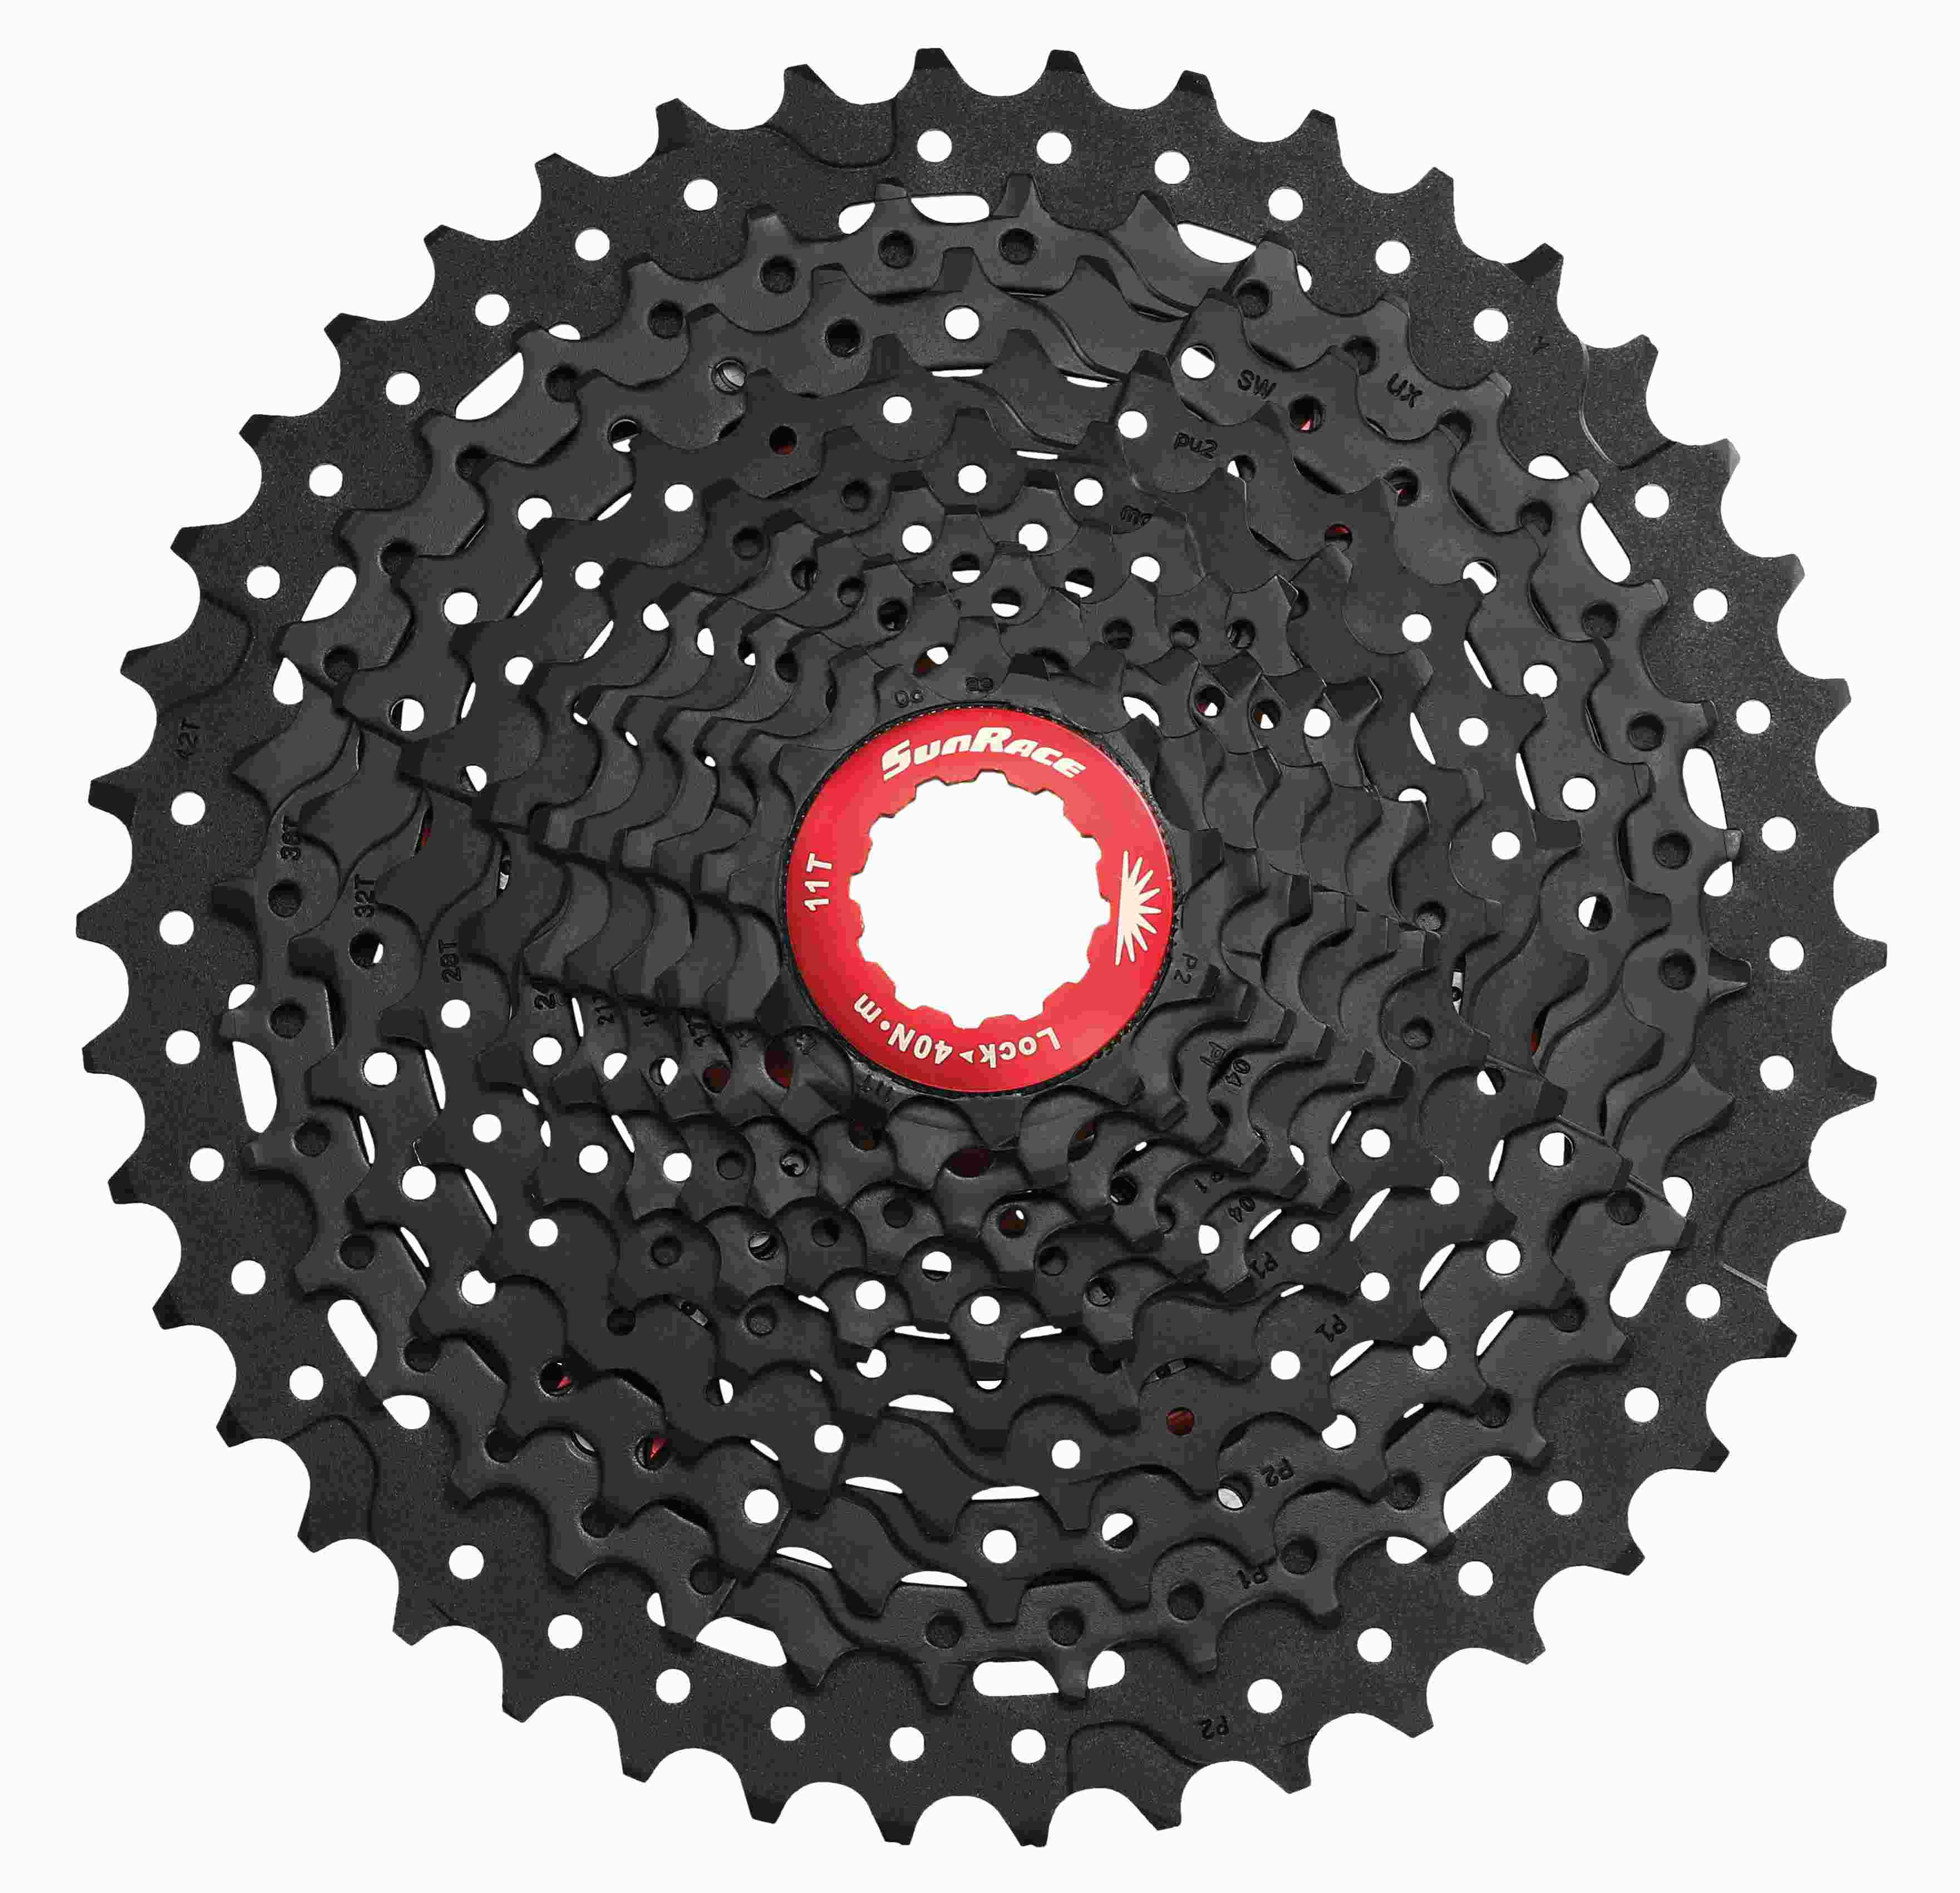 Cassette SUN RACE 11v 11-42 Black/Red CSMX8 EAY